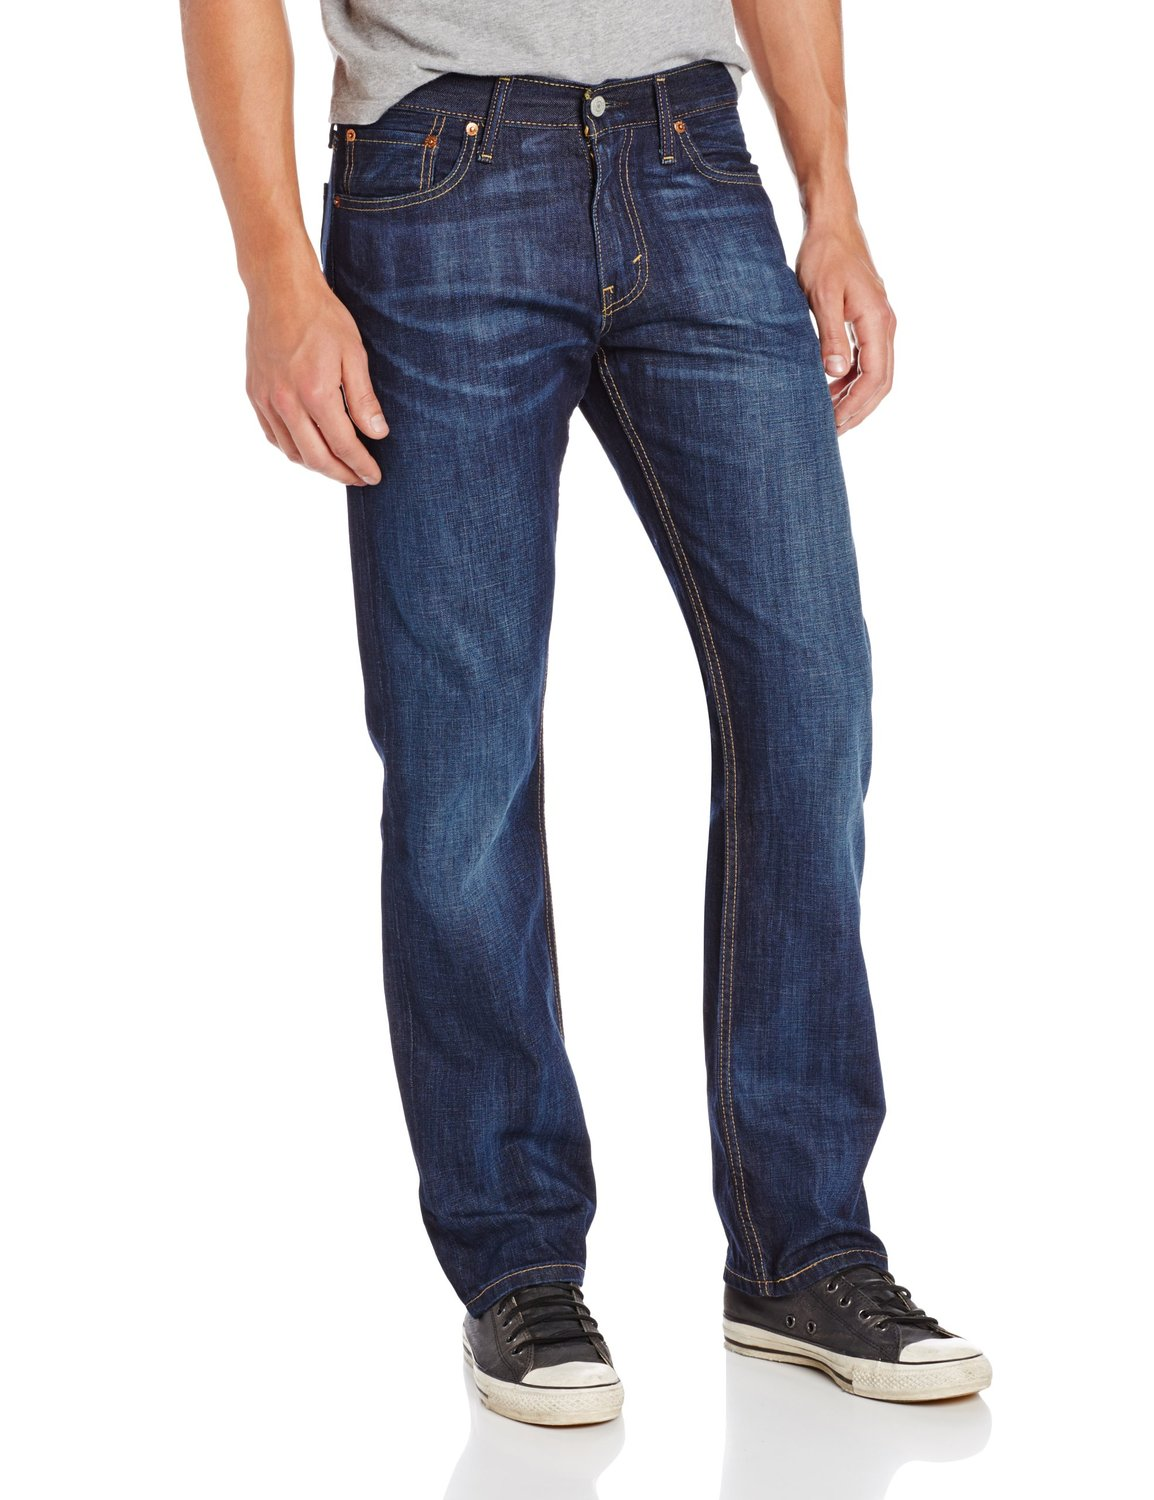 Jeans Levis Levis Mens 514 Straight Jean - Mens Urban Clothing